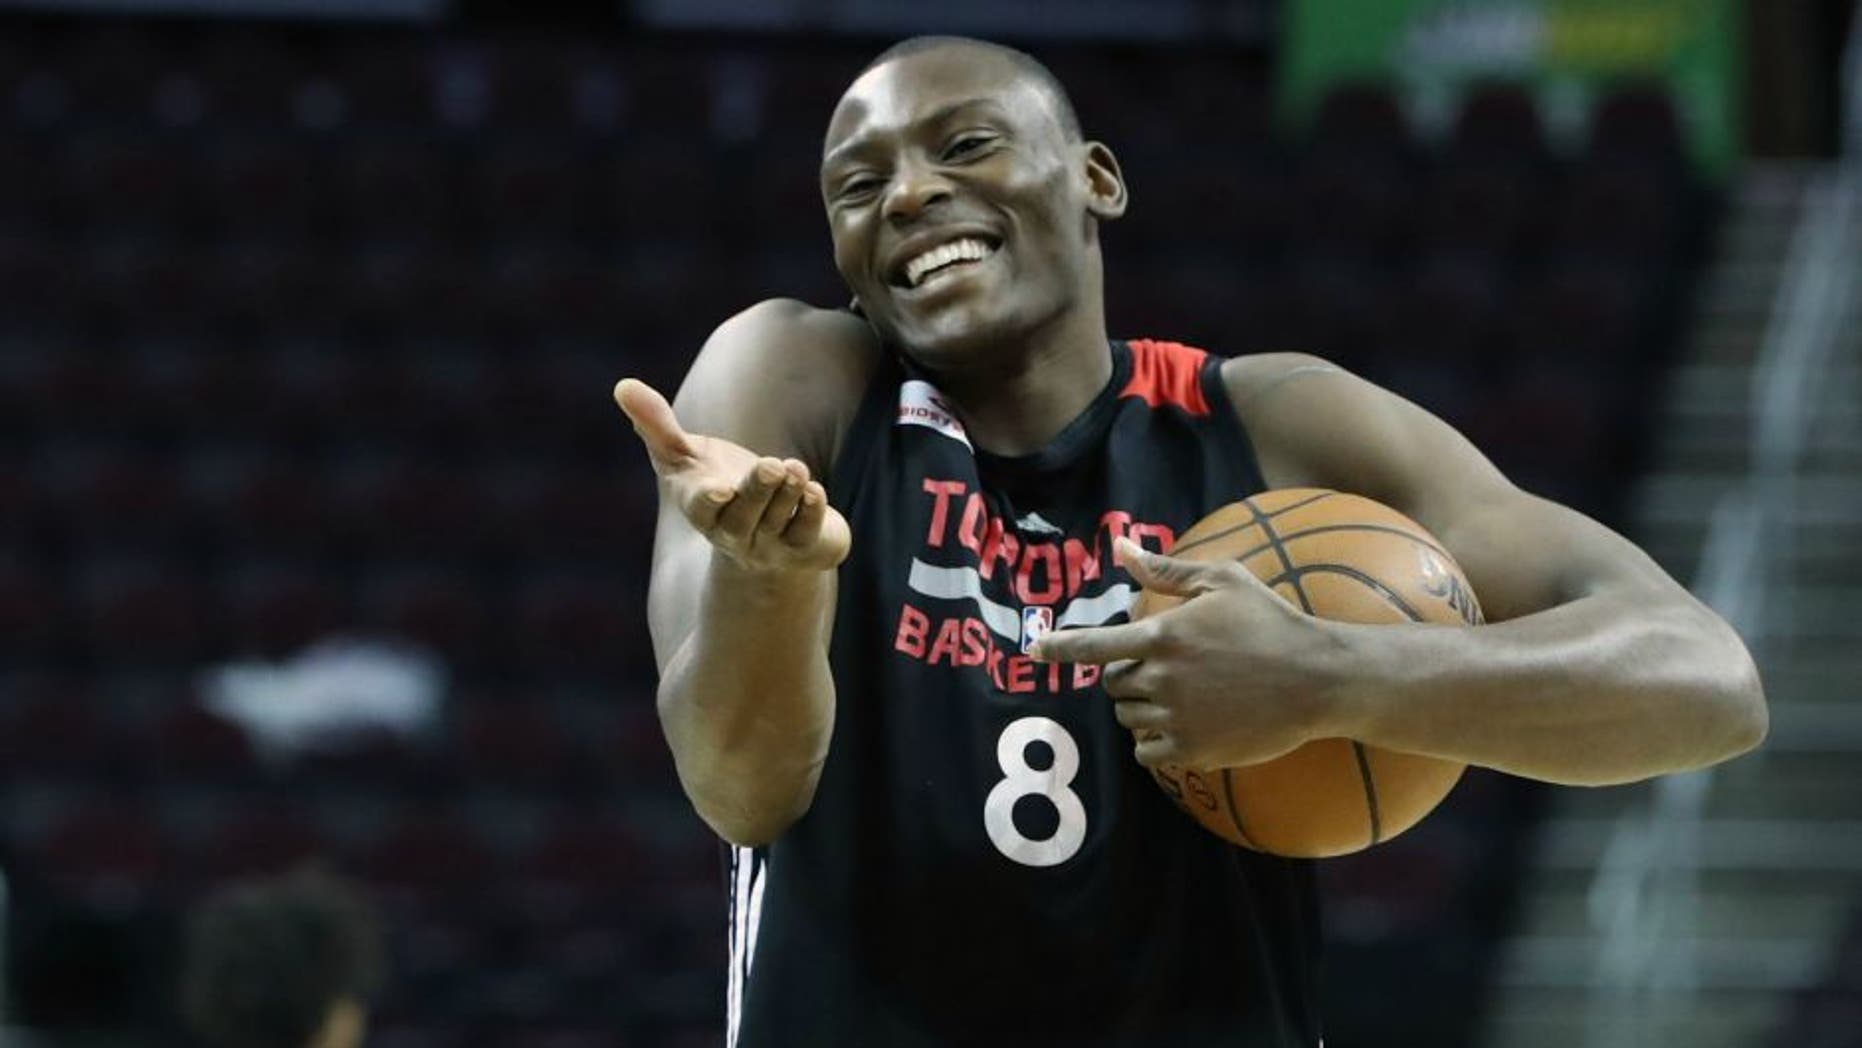 CLEVELAND, OH- MAY 25: Bismack Biyombo laughs after experimenting with an underhanded throw as the Toronto Raptors prepare to play the Cleveland Cavaliers in game 5 of the NBA Conference Finals at Quicken Loans Arena in Cleveland. May 25, 2016. (Steve Russell/Toronto Star via Getty Images)